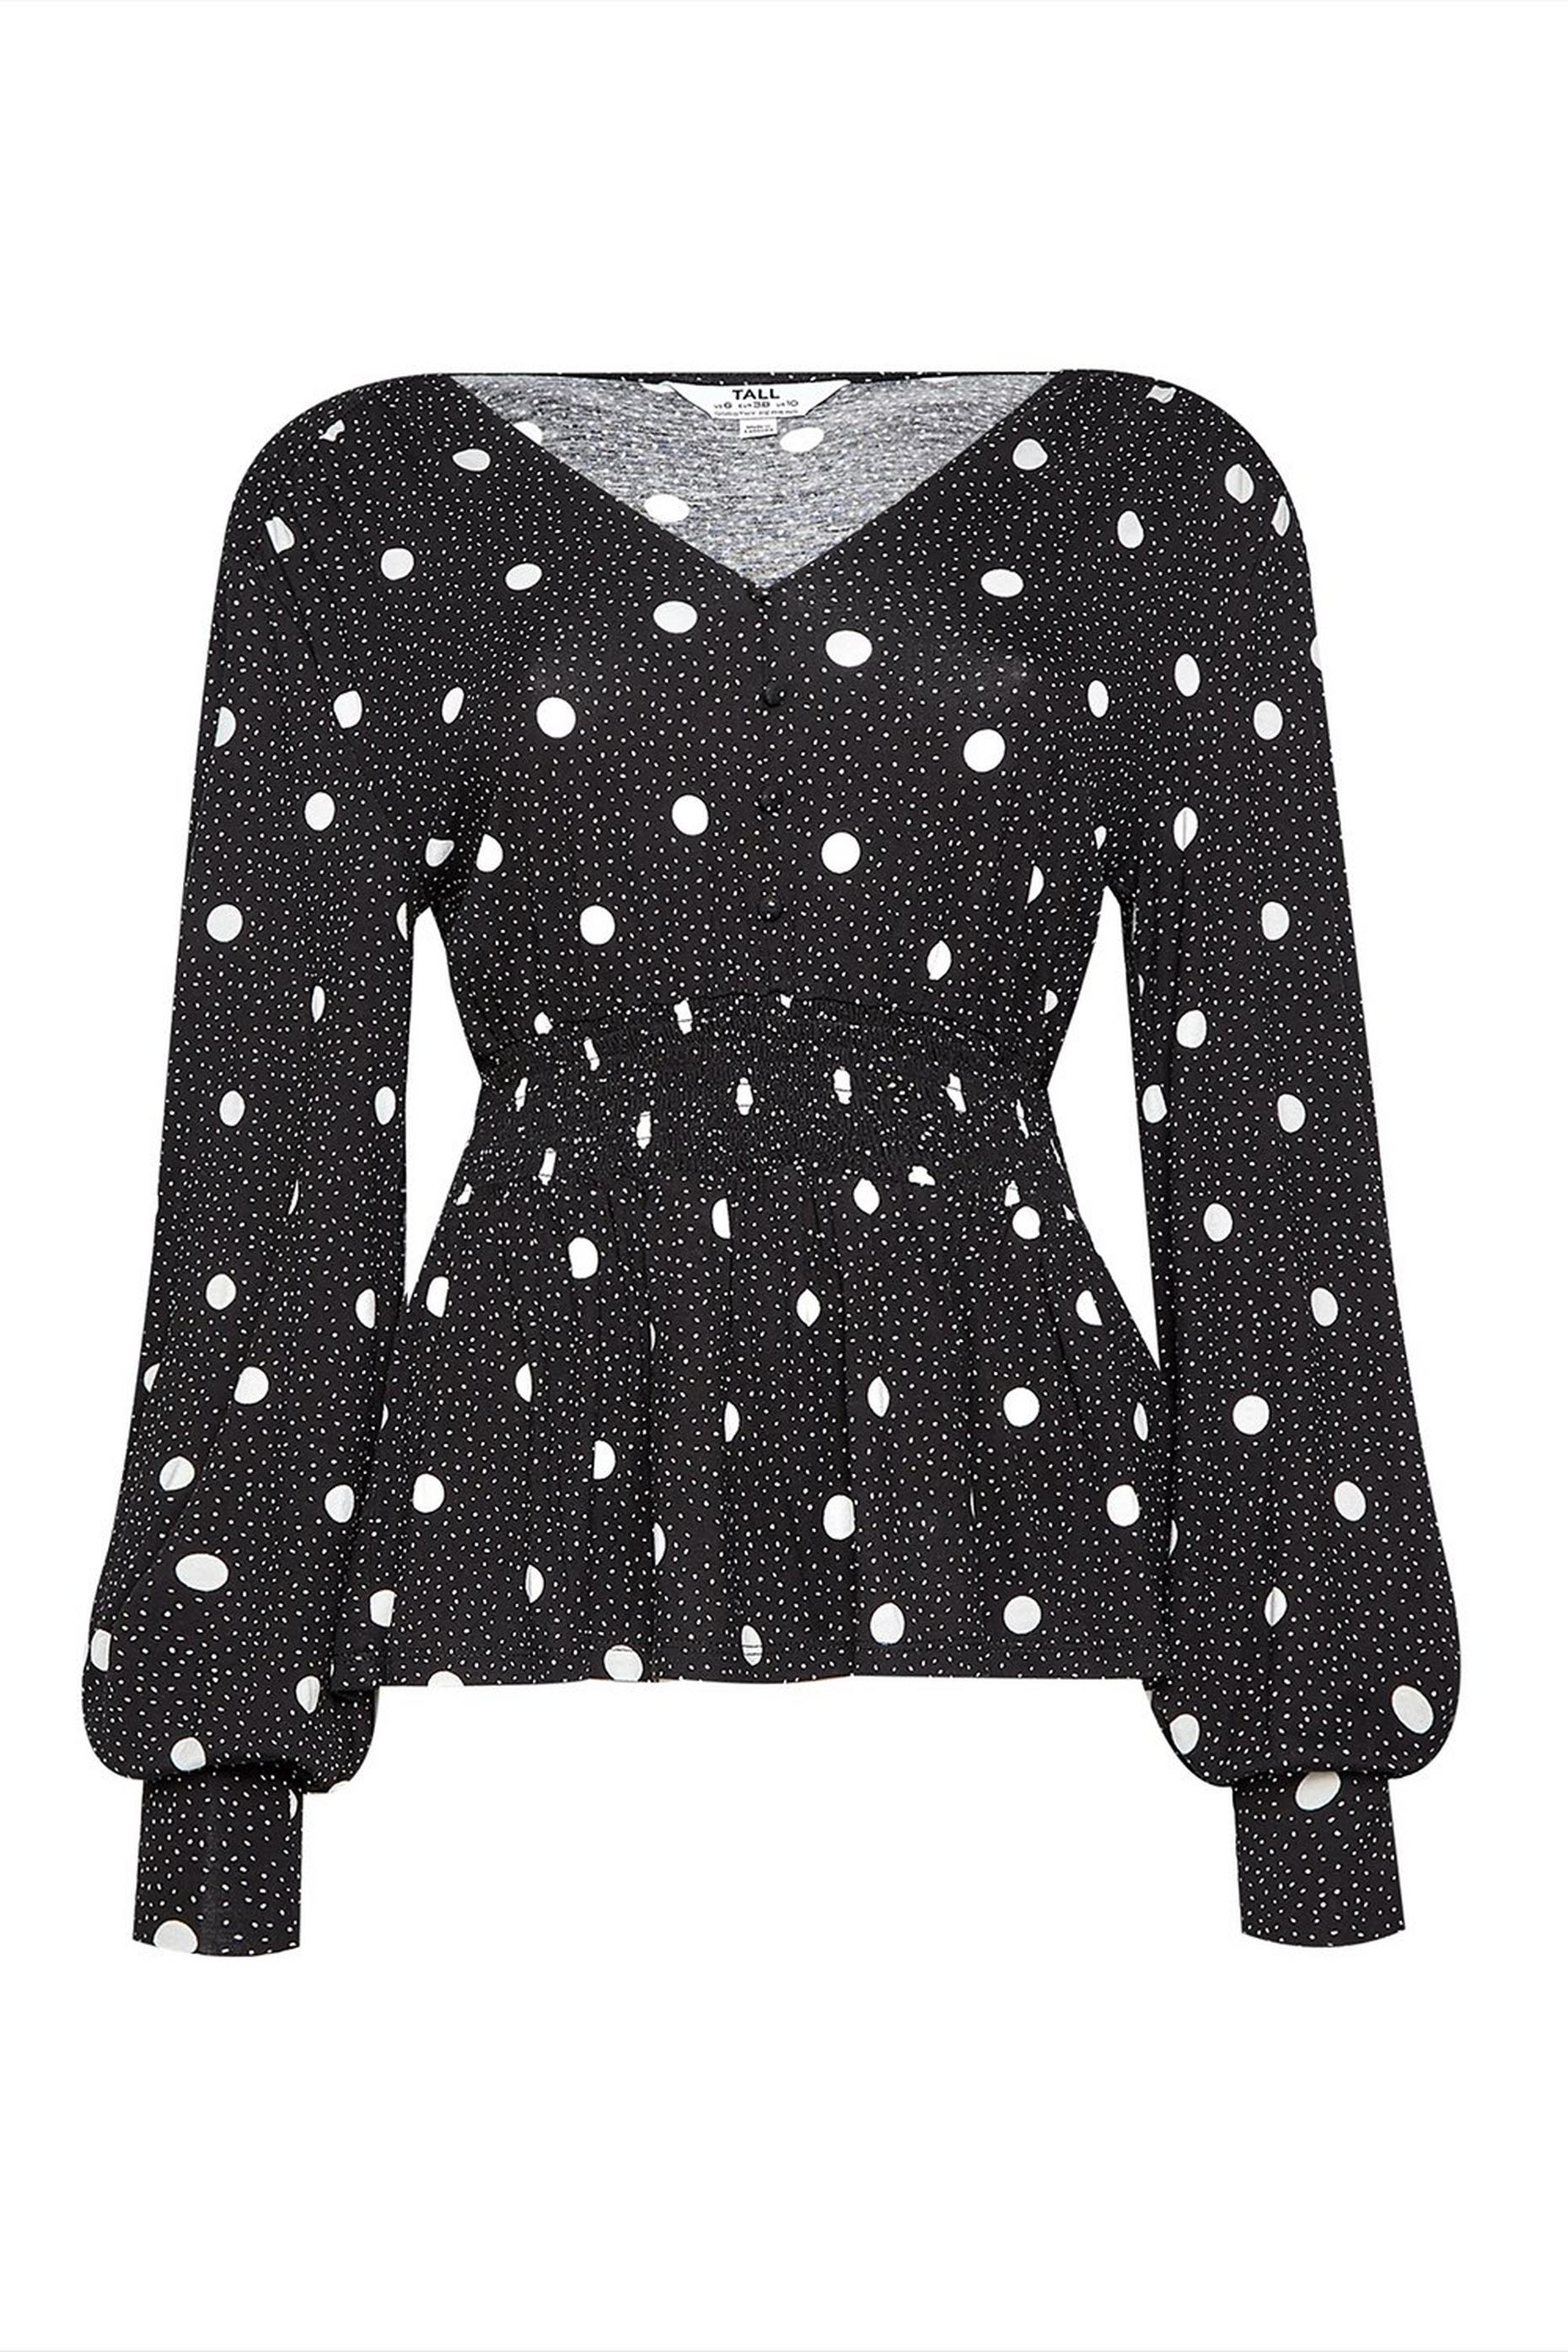 Tall Black Spot Print Shirred Top